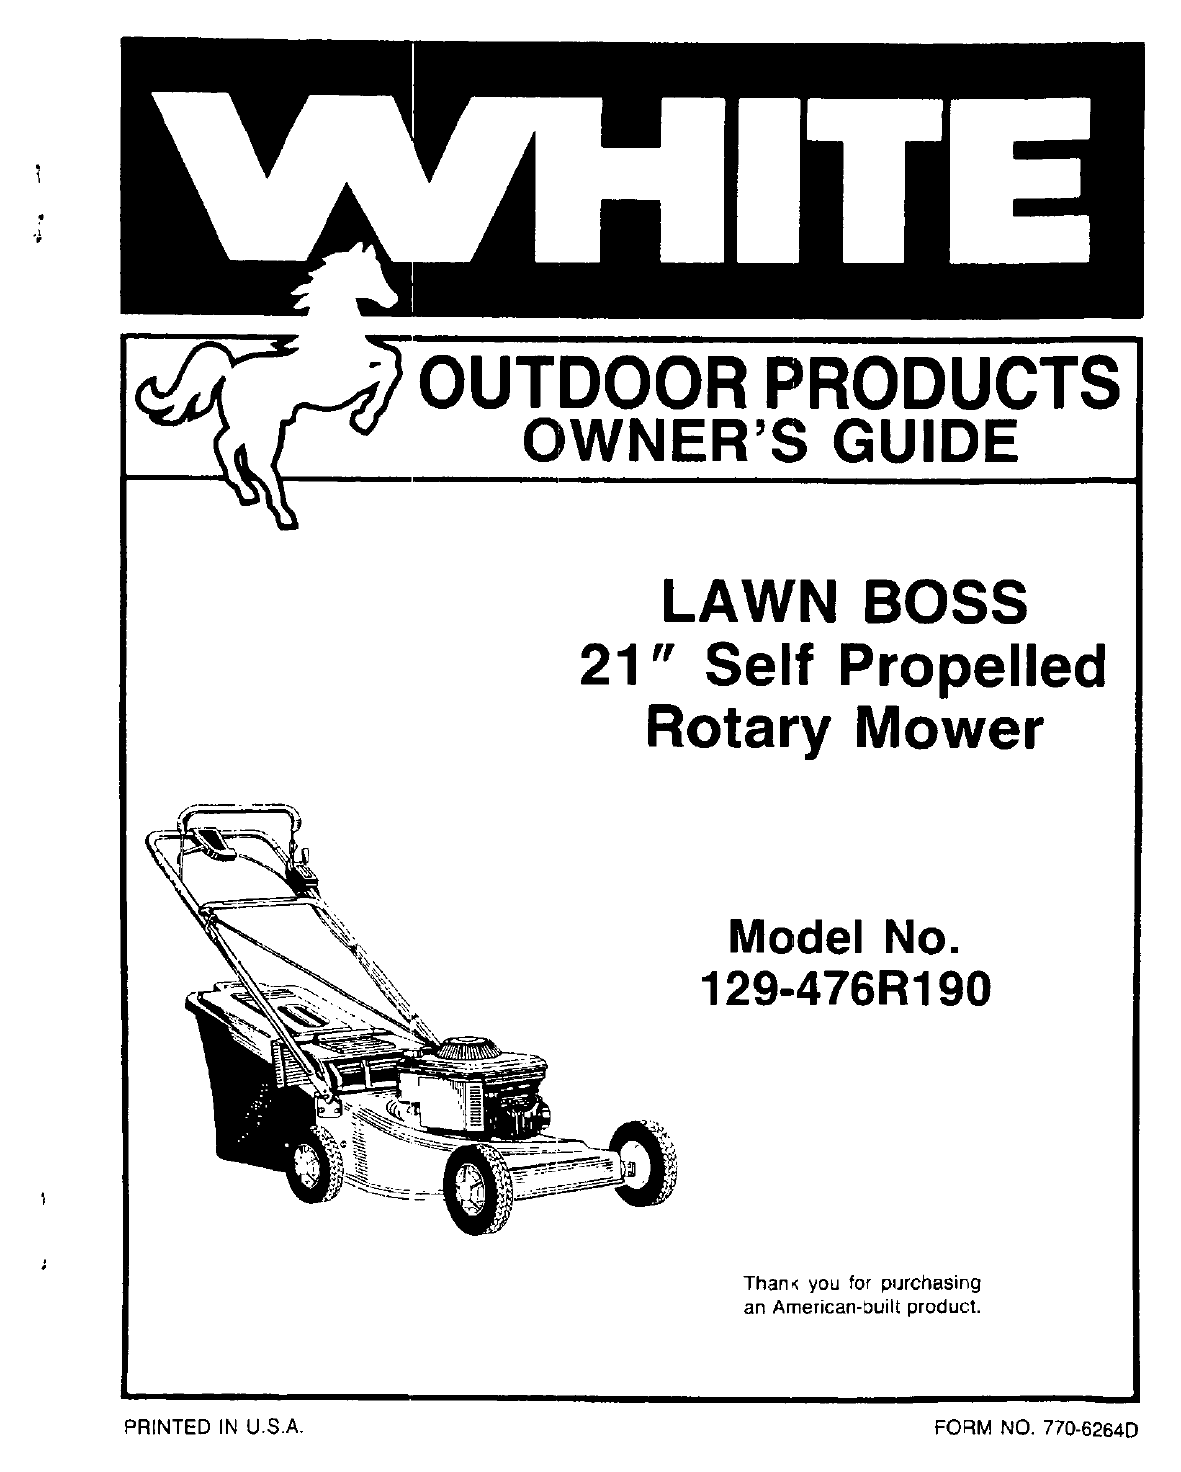 White Outdoor Lawn Mower 129-476R190 User Guide